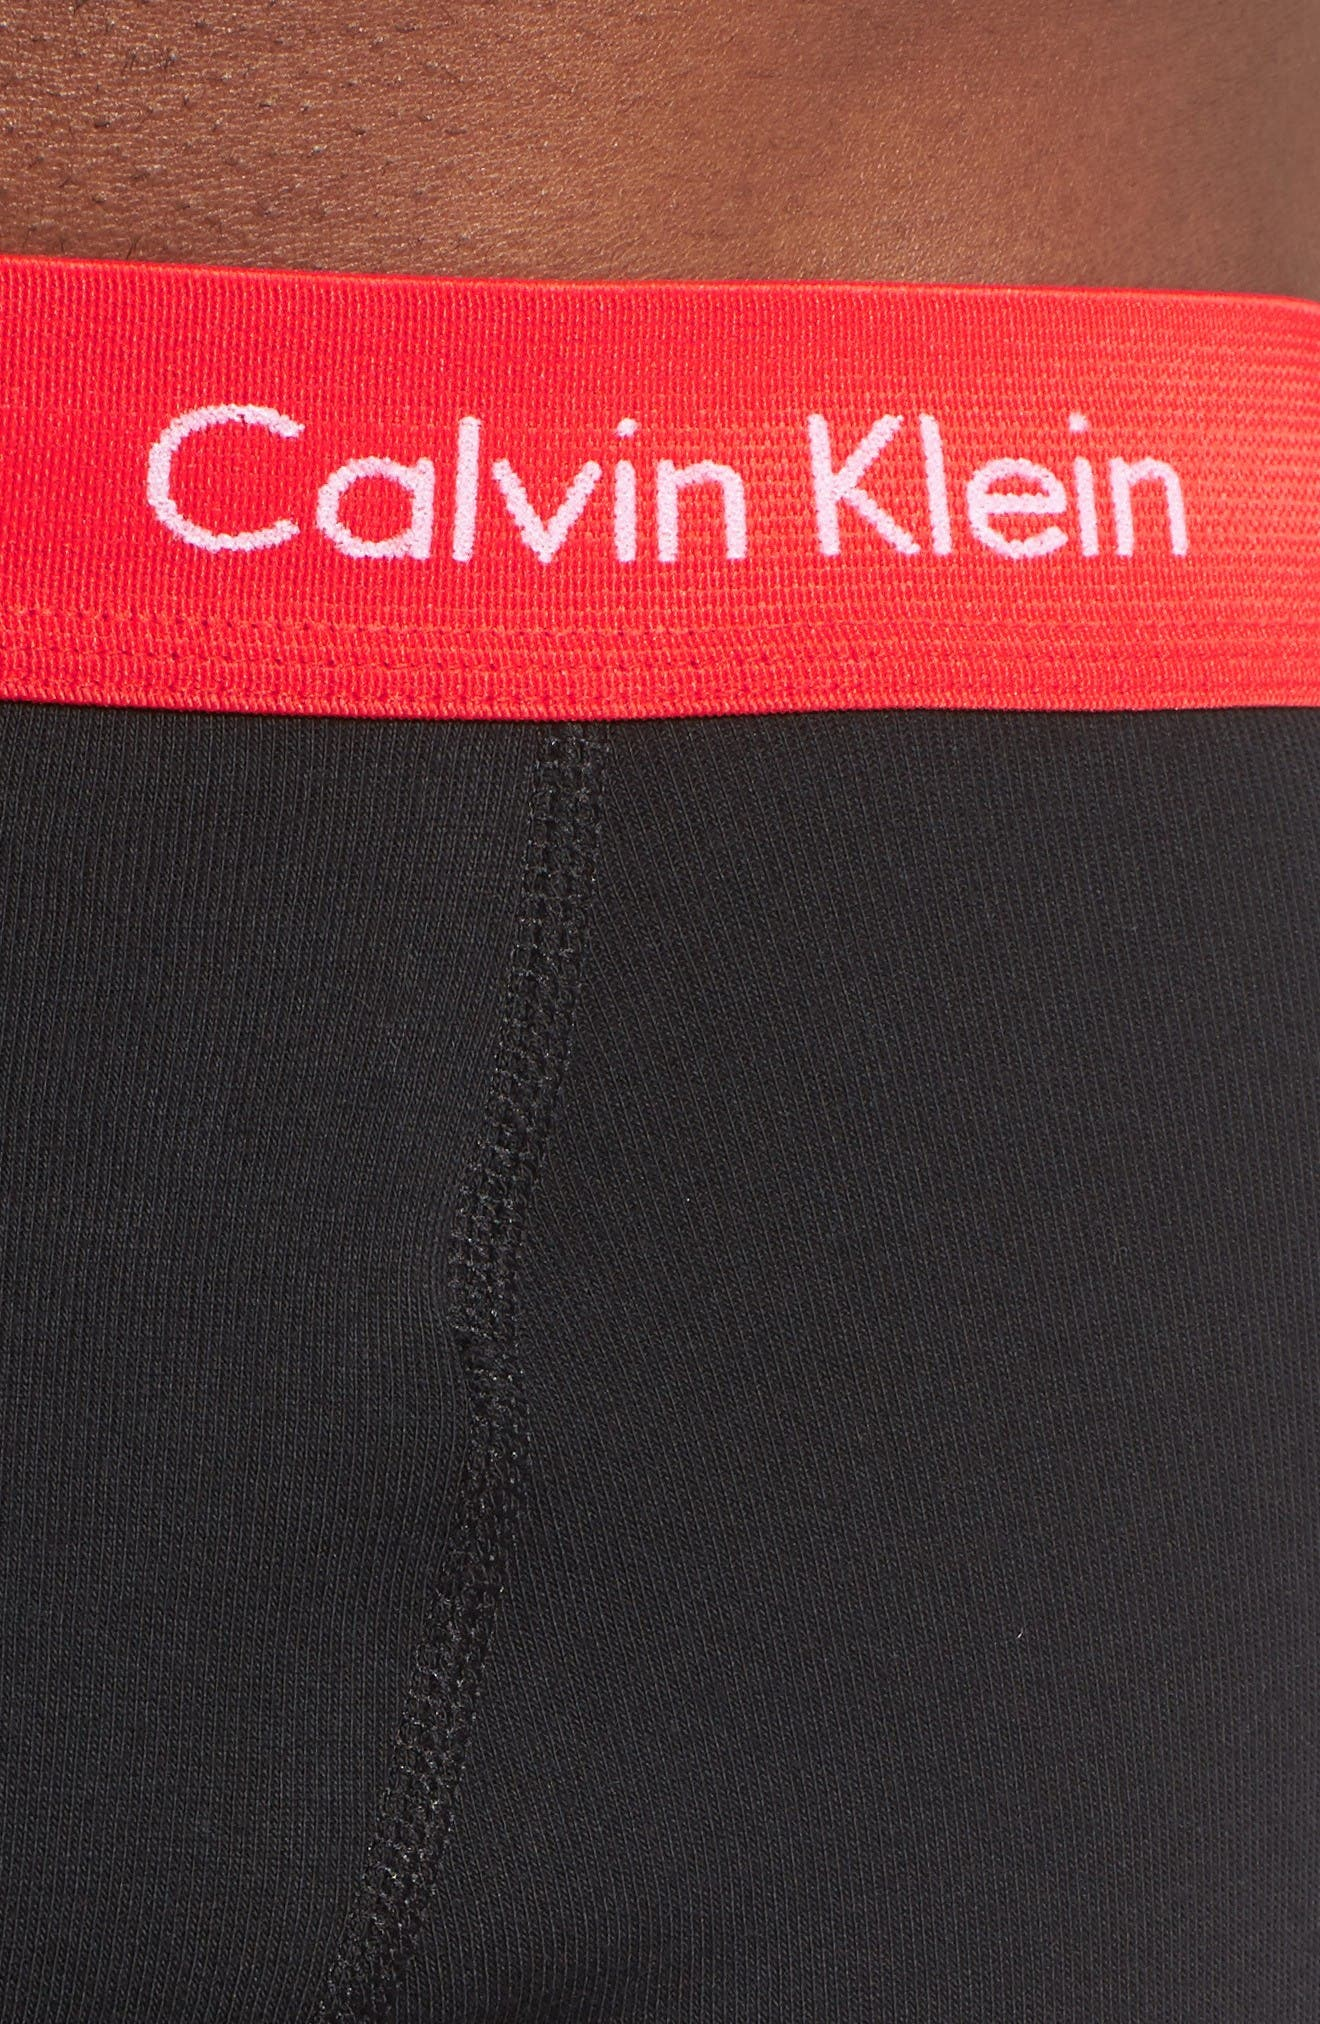 Alternate Image 5  - Calvin Klein 3-Pack Boxer Briefs